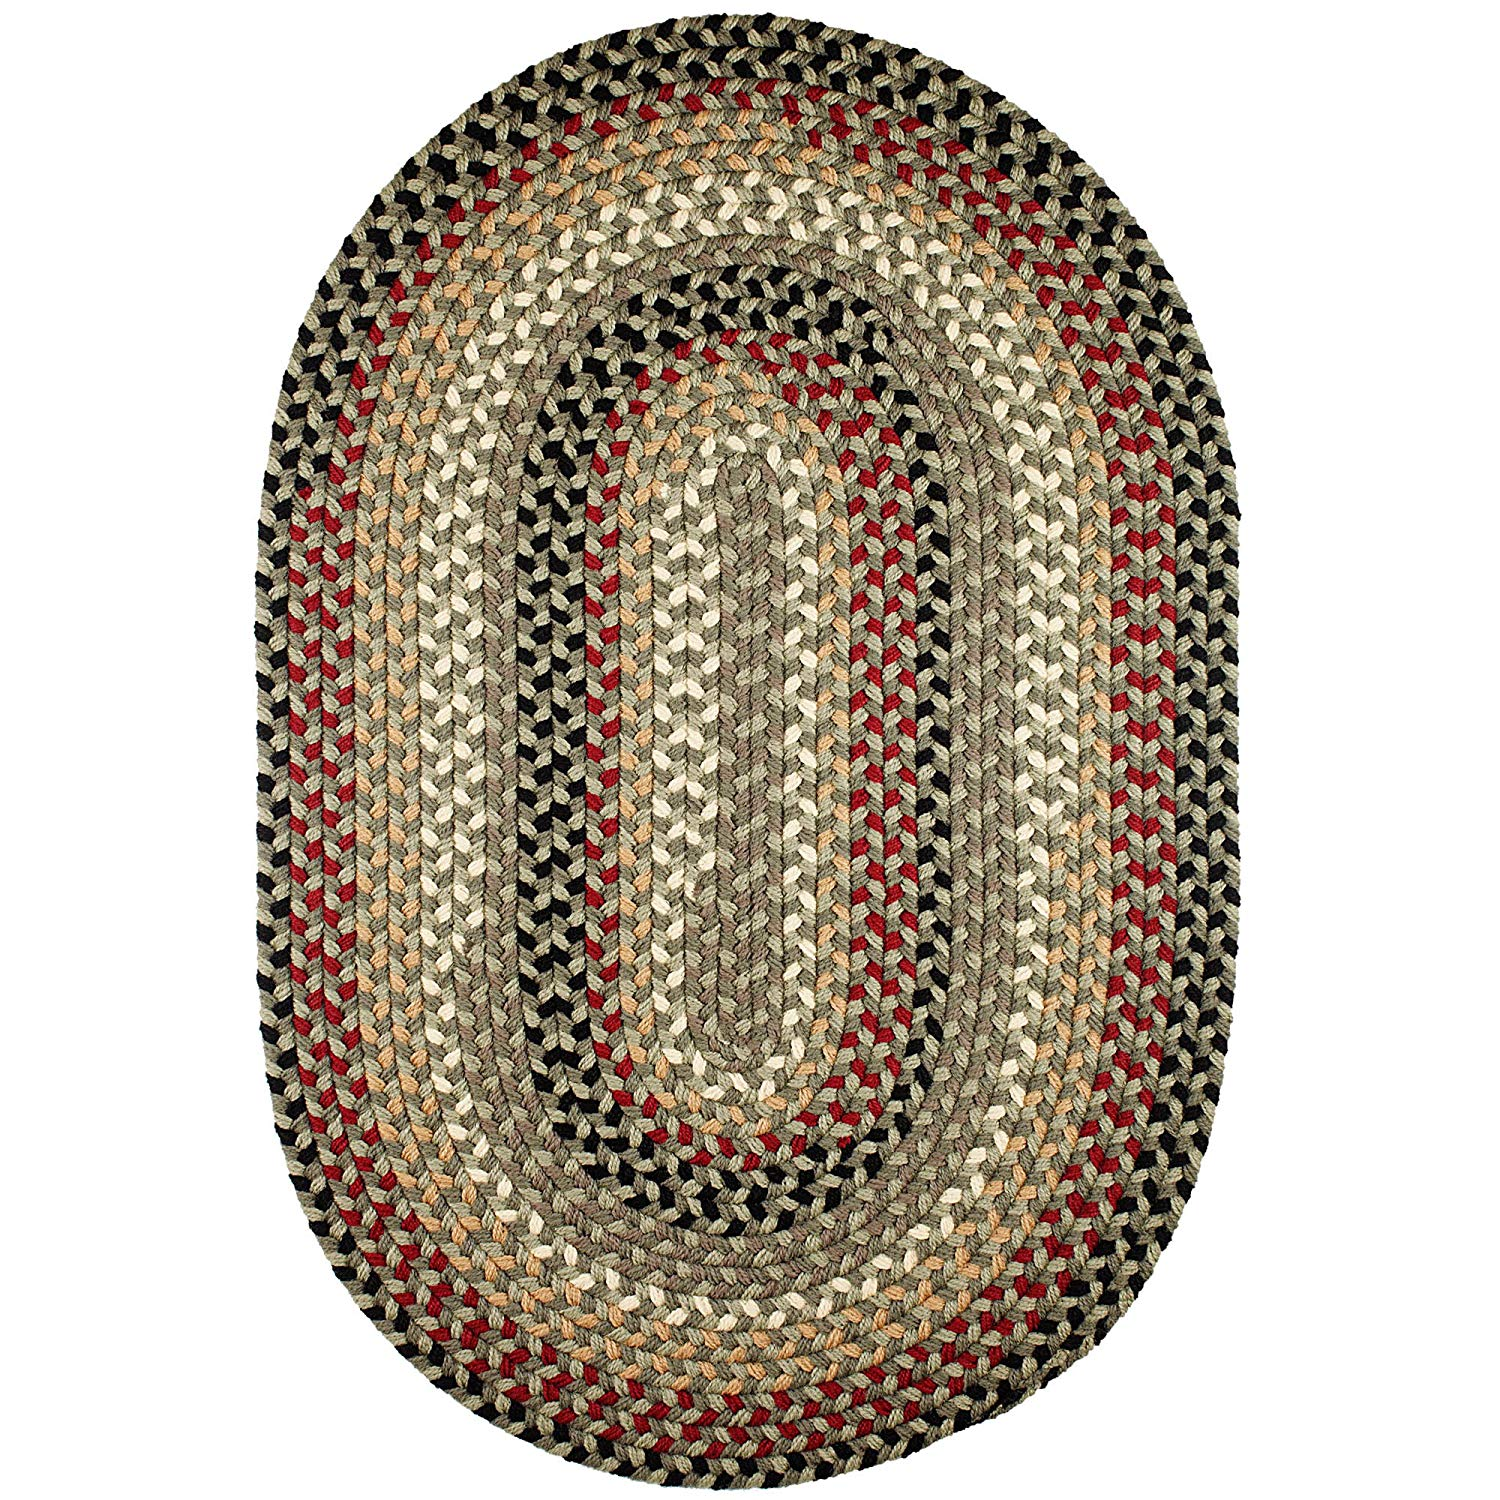 Super Area Rugs Santa Maria Braided Rug Indoor Outdoor Rug Washable Reversible Green Patio Deck Carpet, 5' X 8' Oval